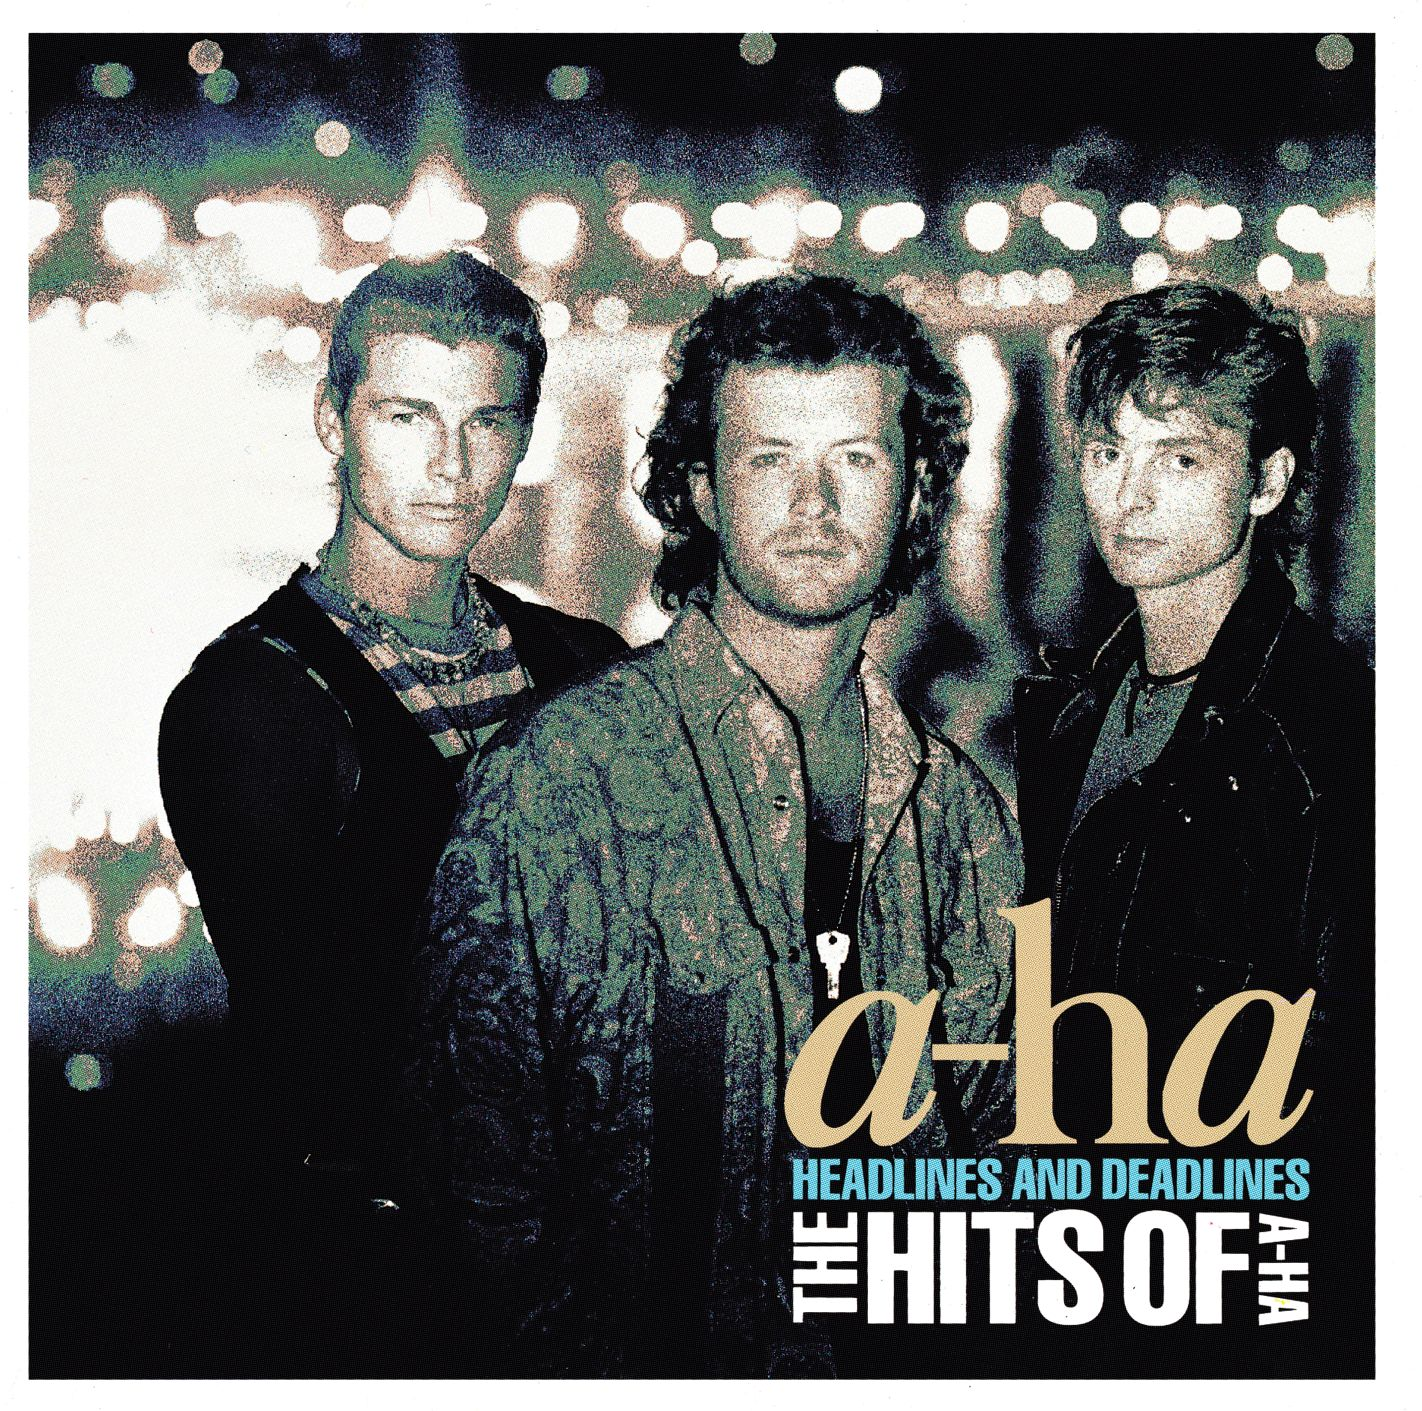 Competition: Win classic 80s greatest hits on vinyl! - A-ha - Headlines And Deadlines